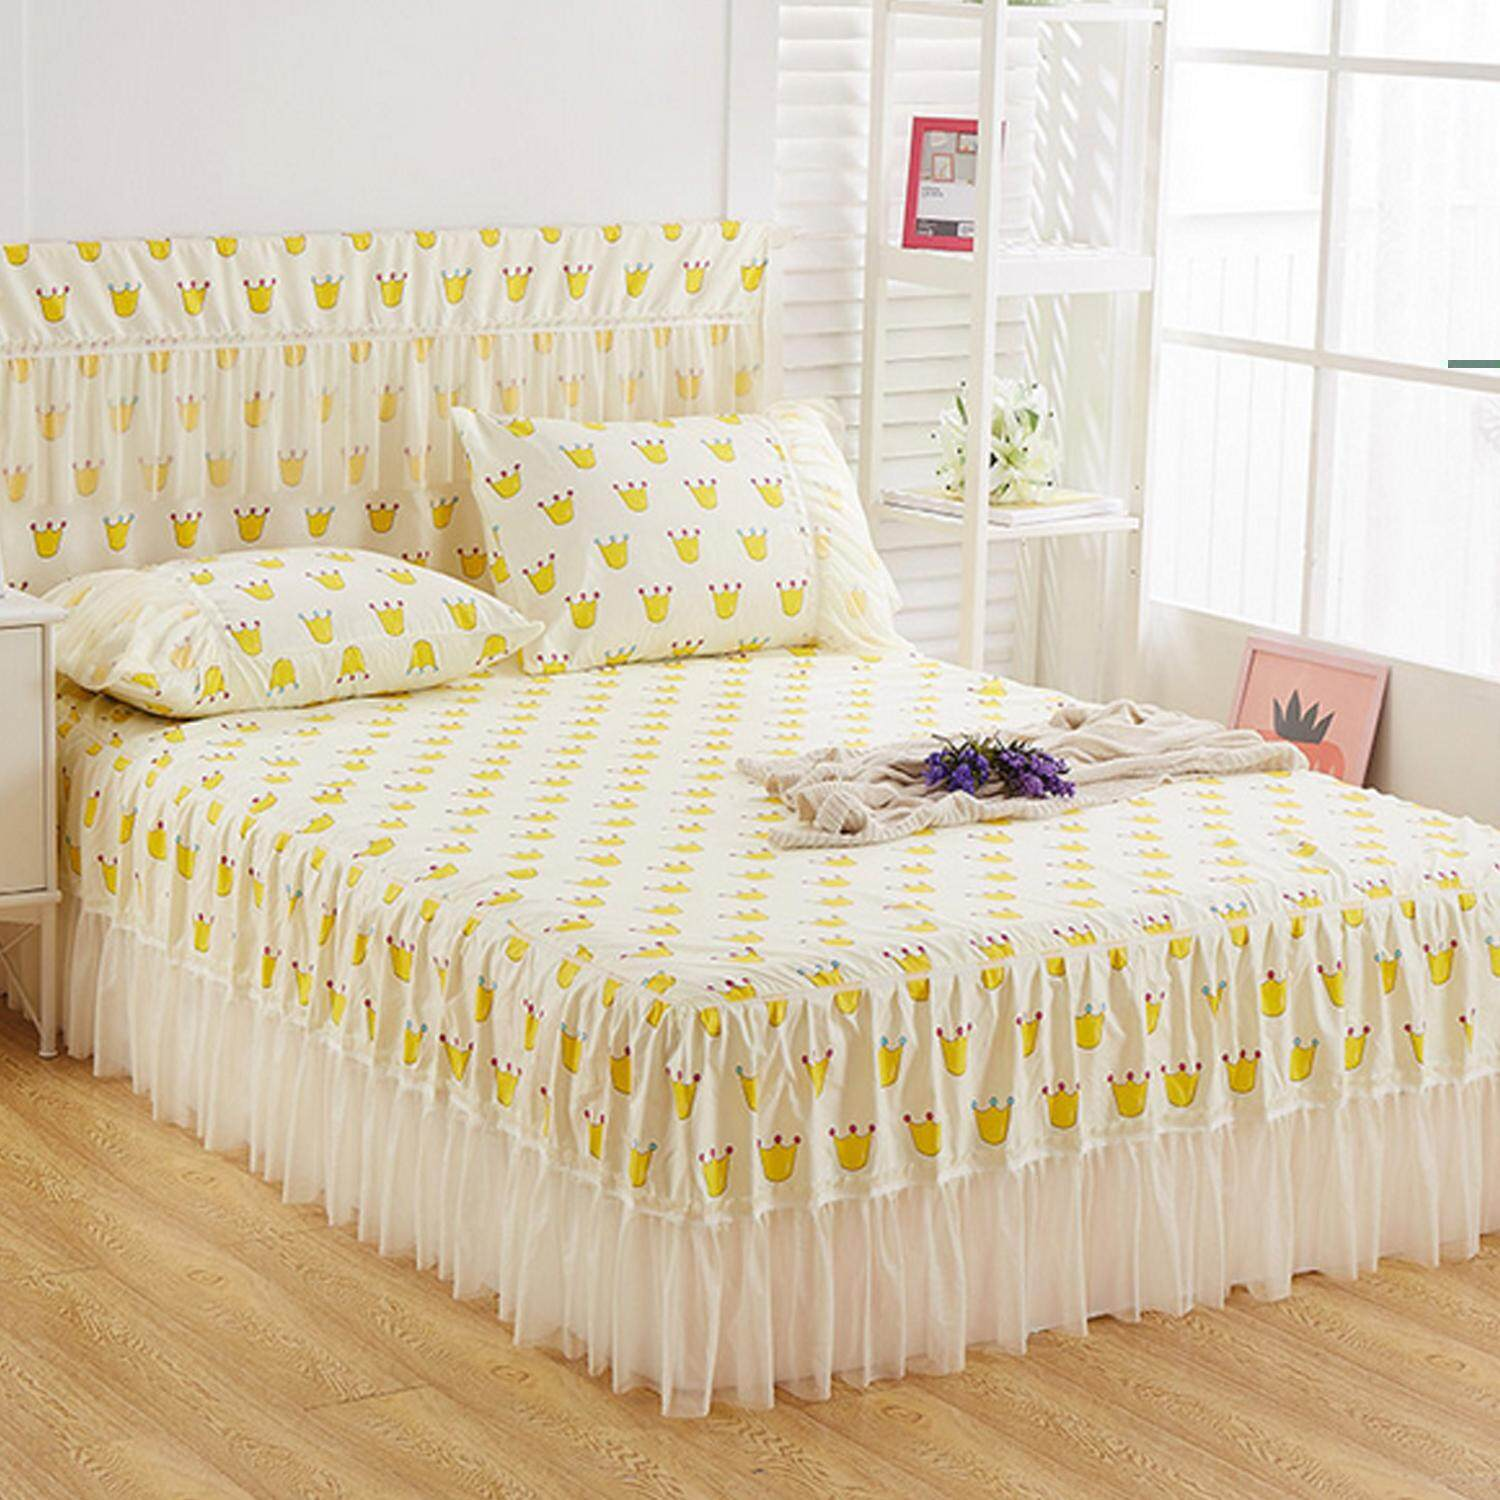 Attractive Lovely Pastoral Style Bed Sheet Lace Bed Skirt Girly Bedding Supplies For  Home Bedroom Hotel Dormitory